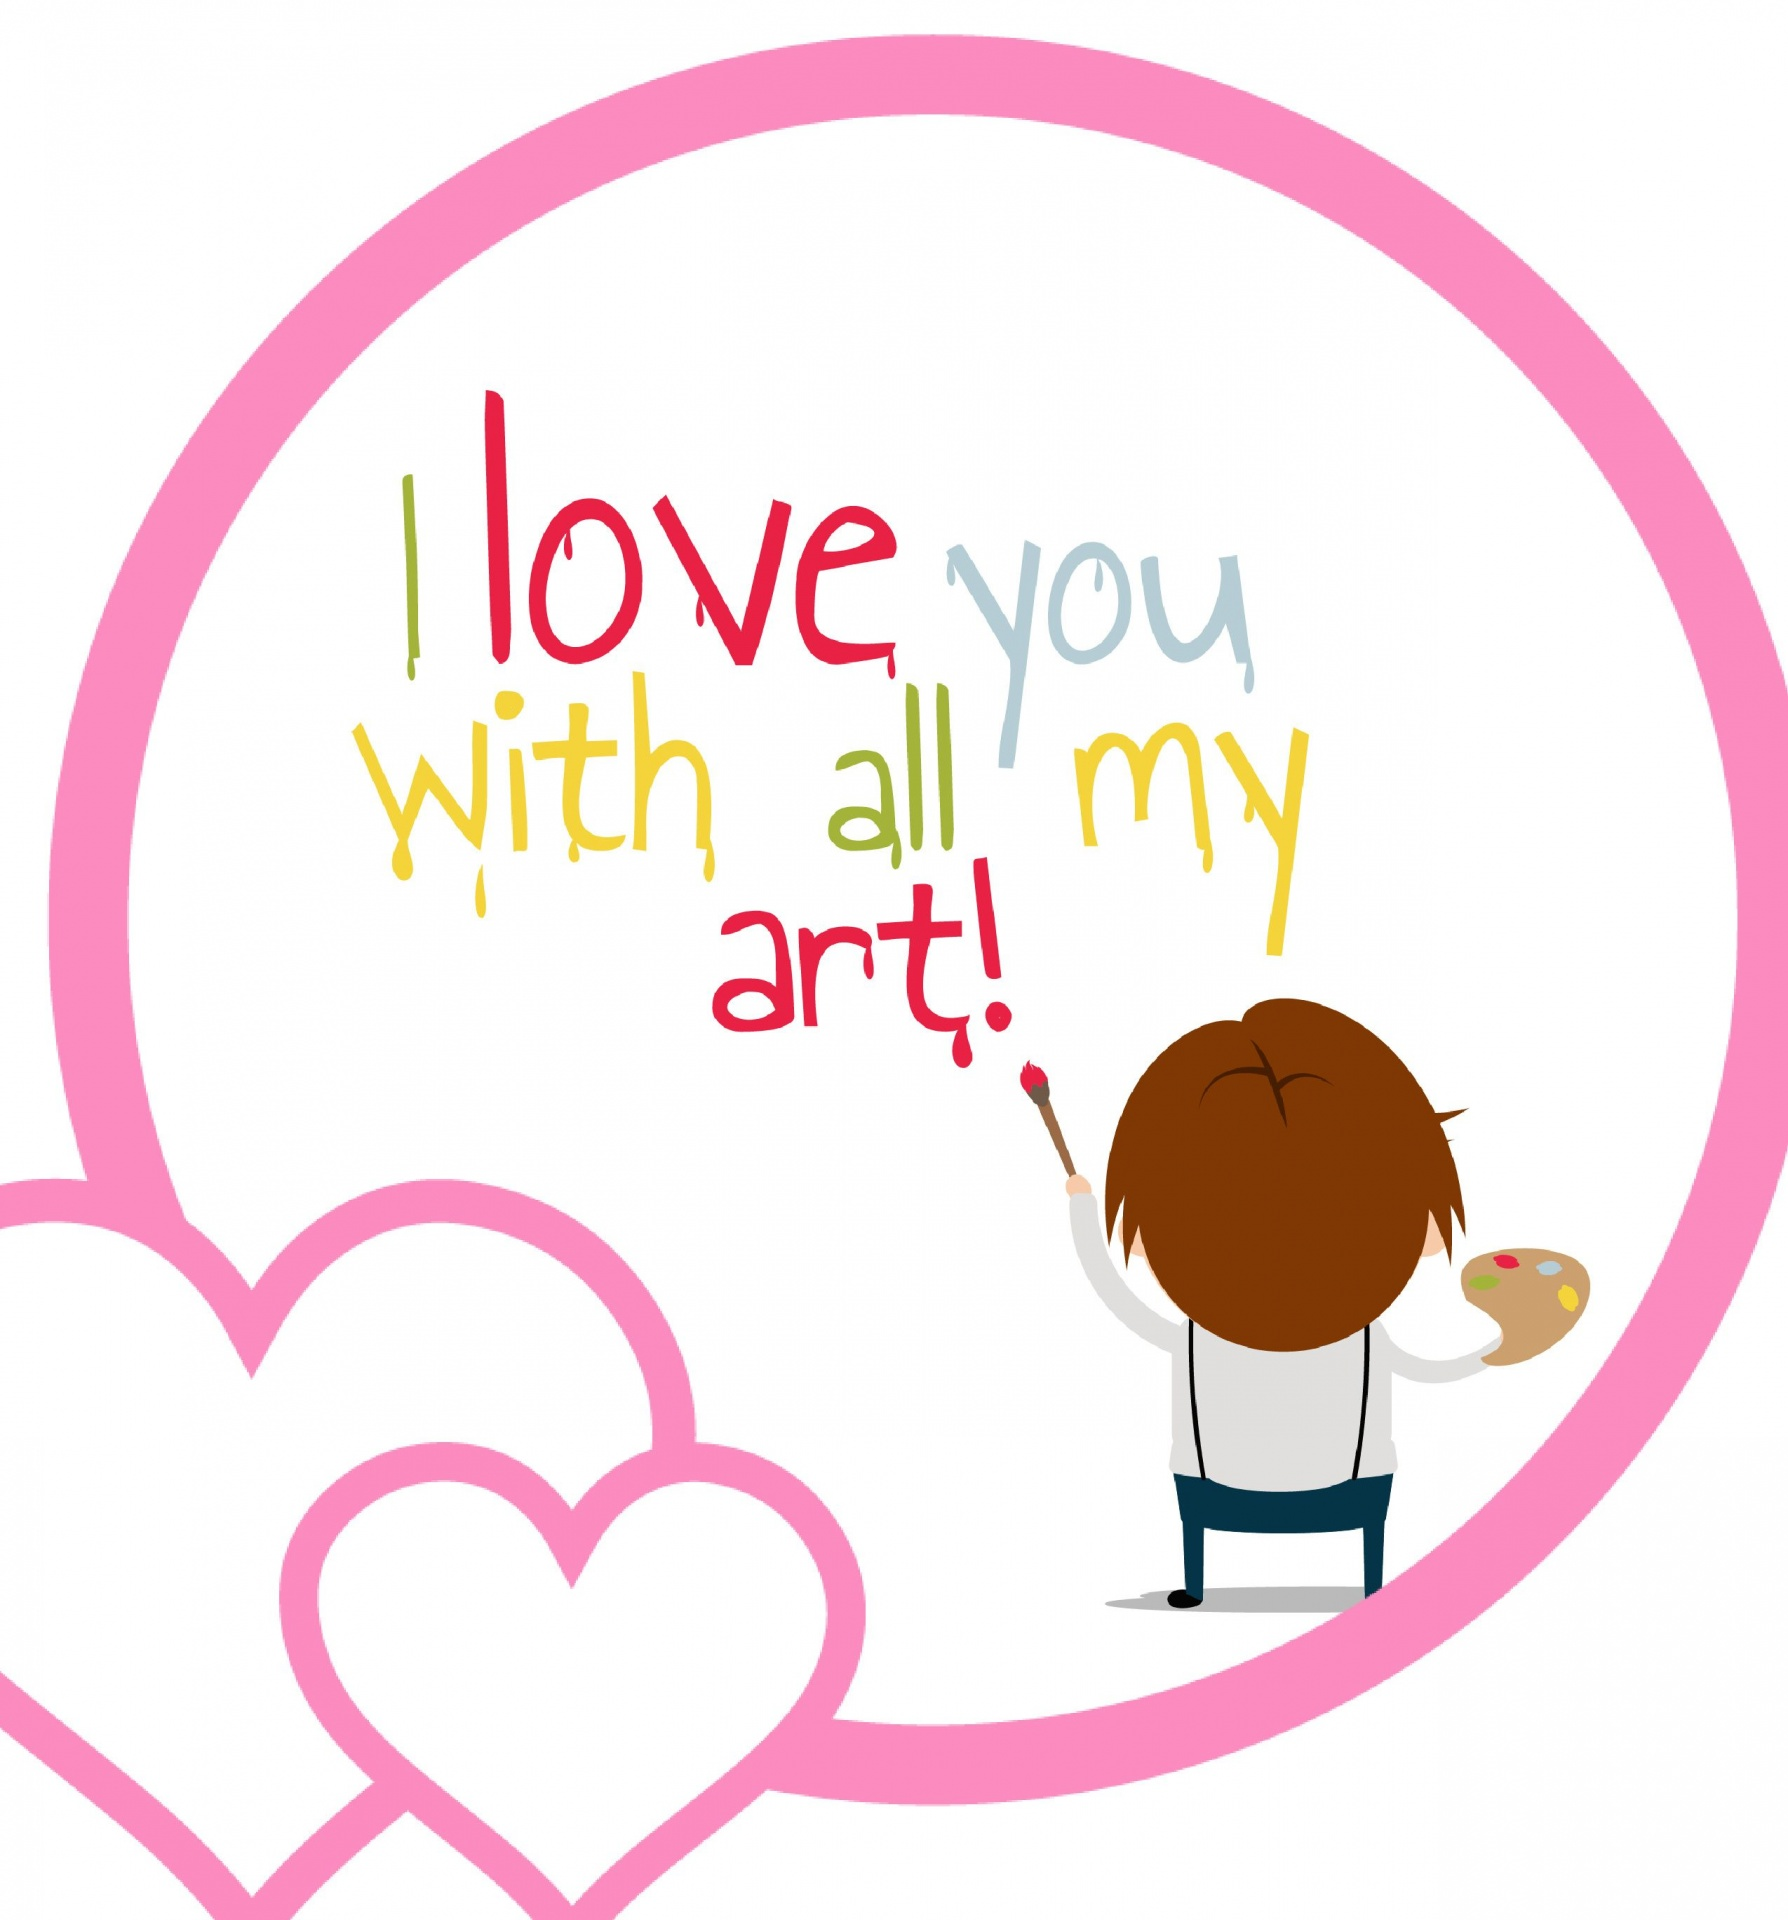 I love you with all my art